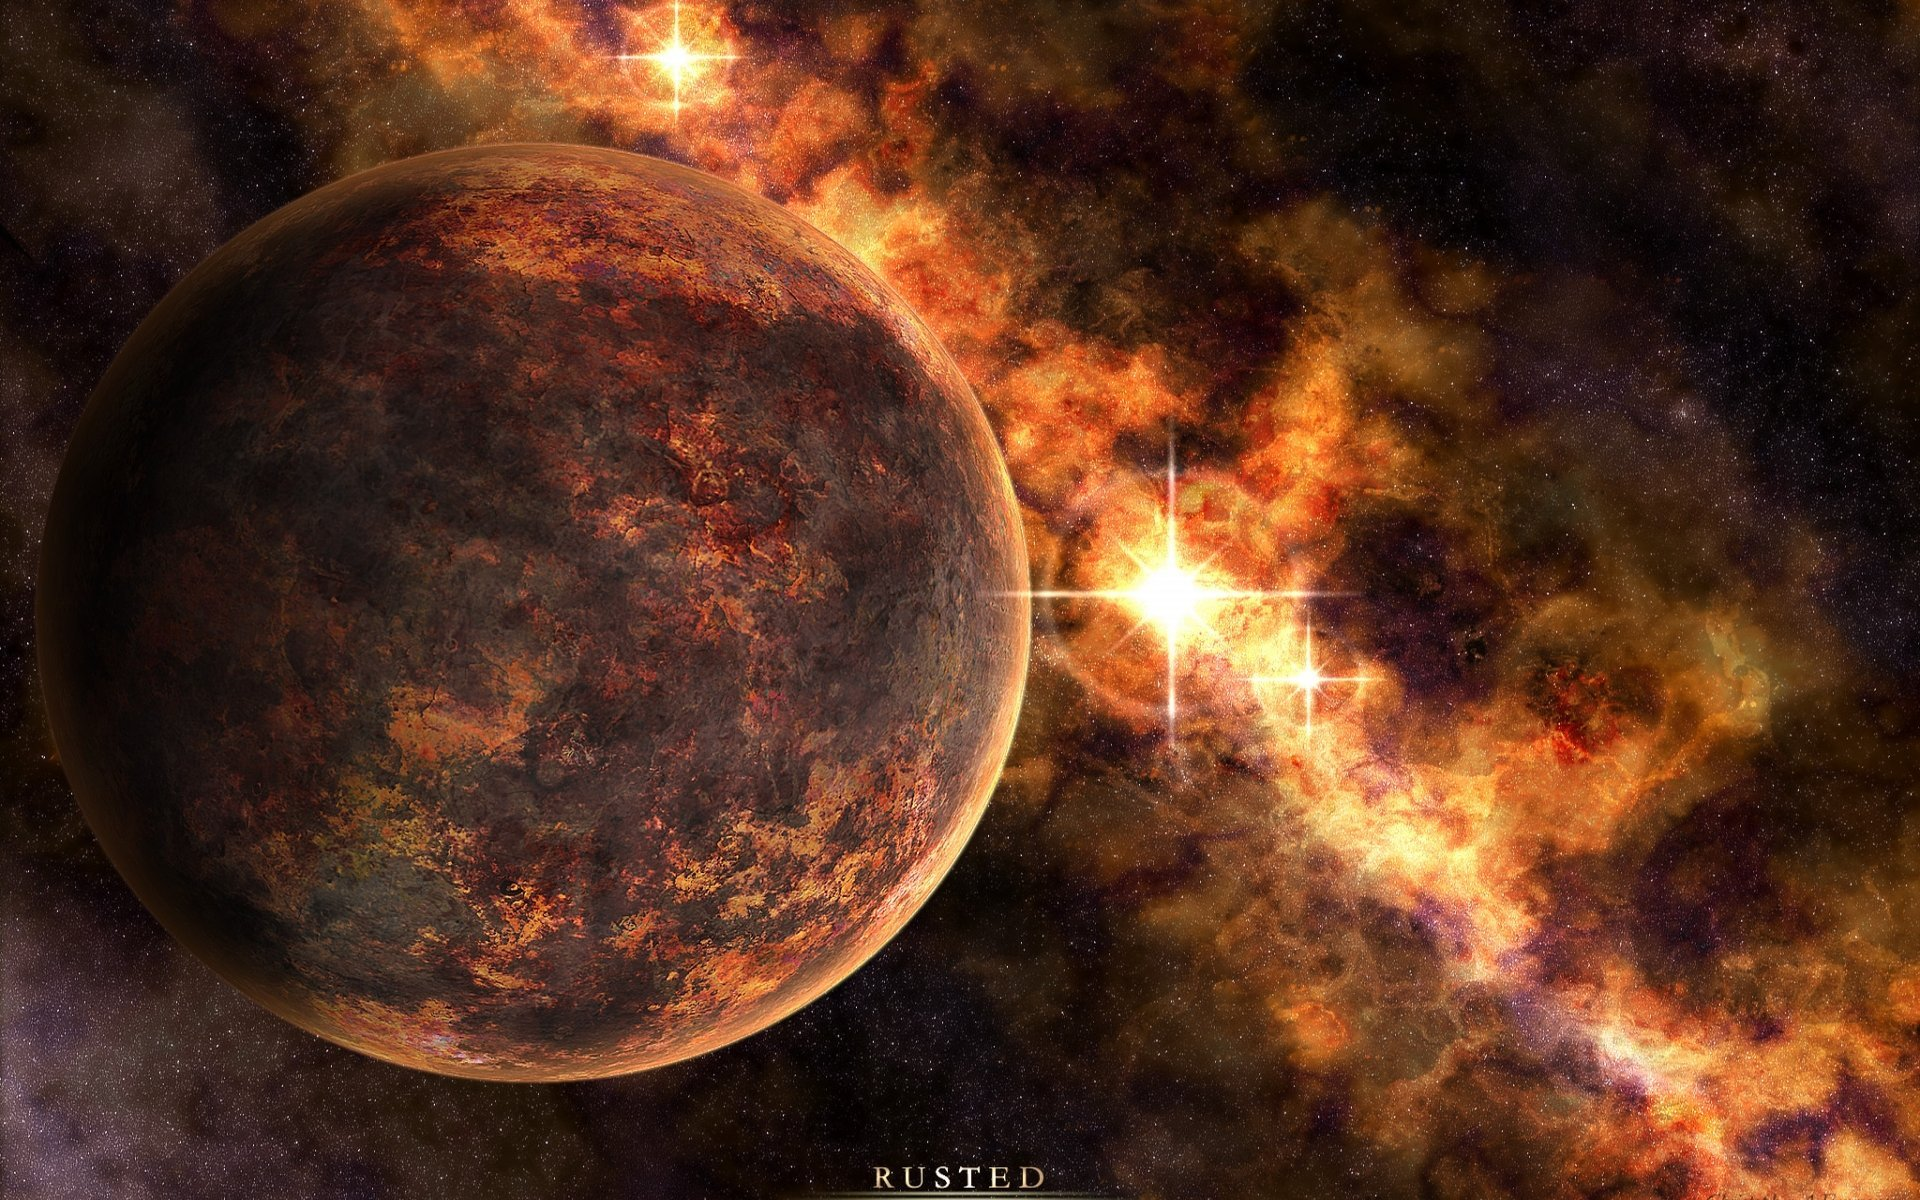 wallpapers google cool planet rustedplanet images themes 1920x1200